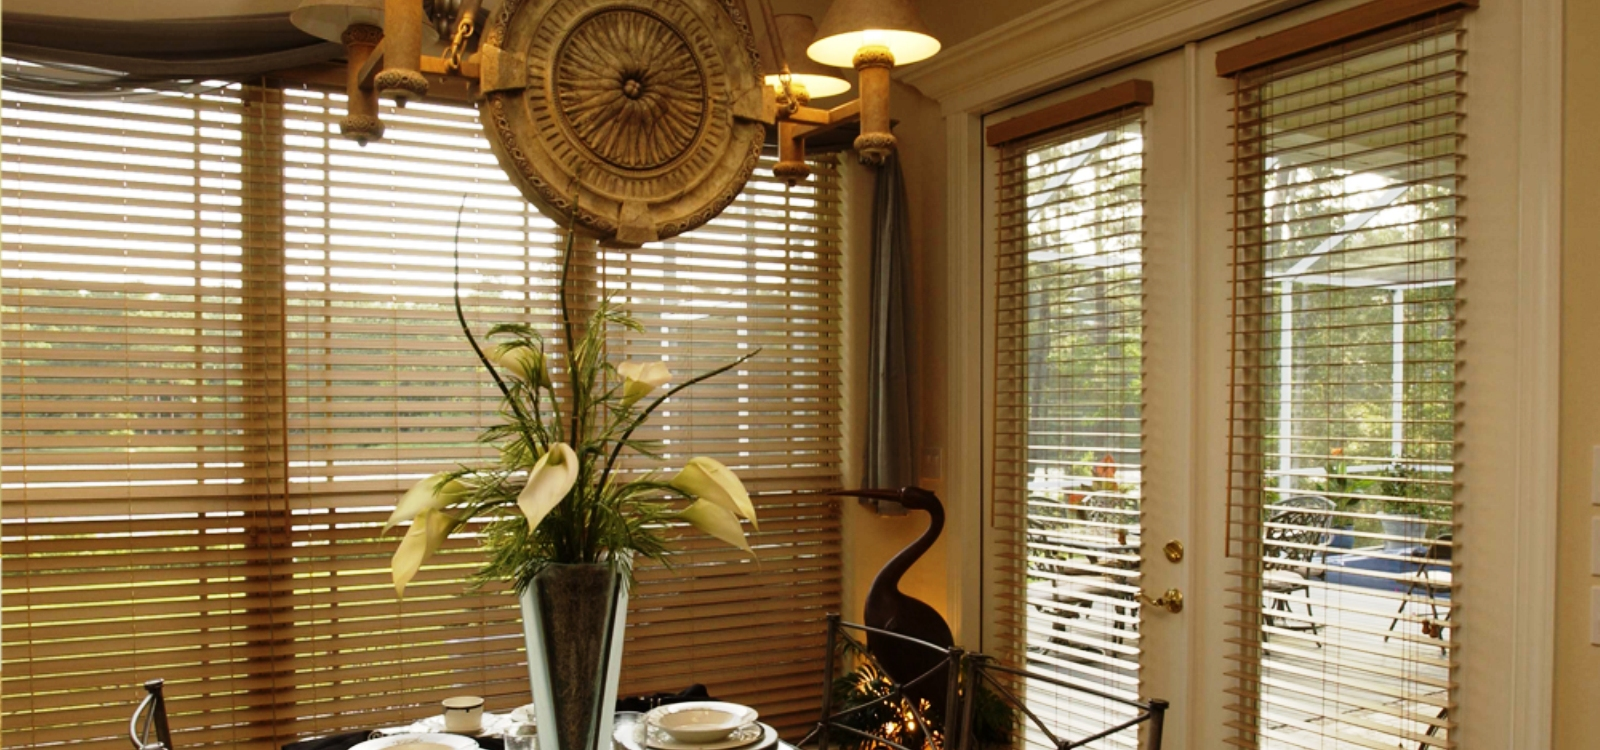 frm blind sydney blinds quotes by campbelltown deck free installation outdoor sqm design